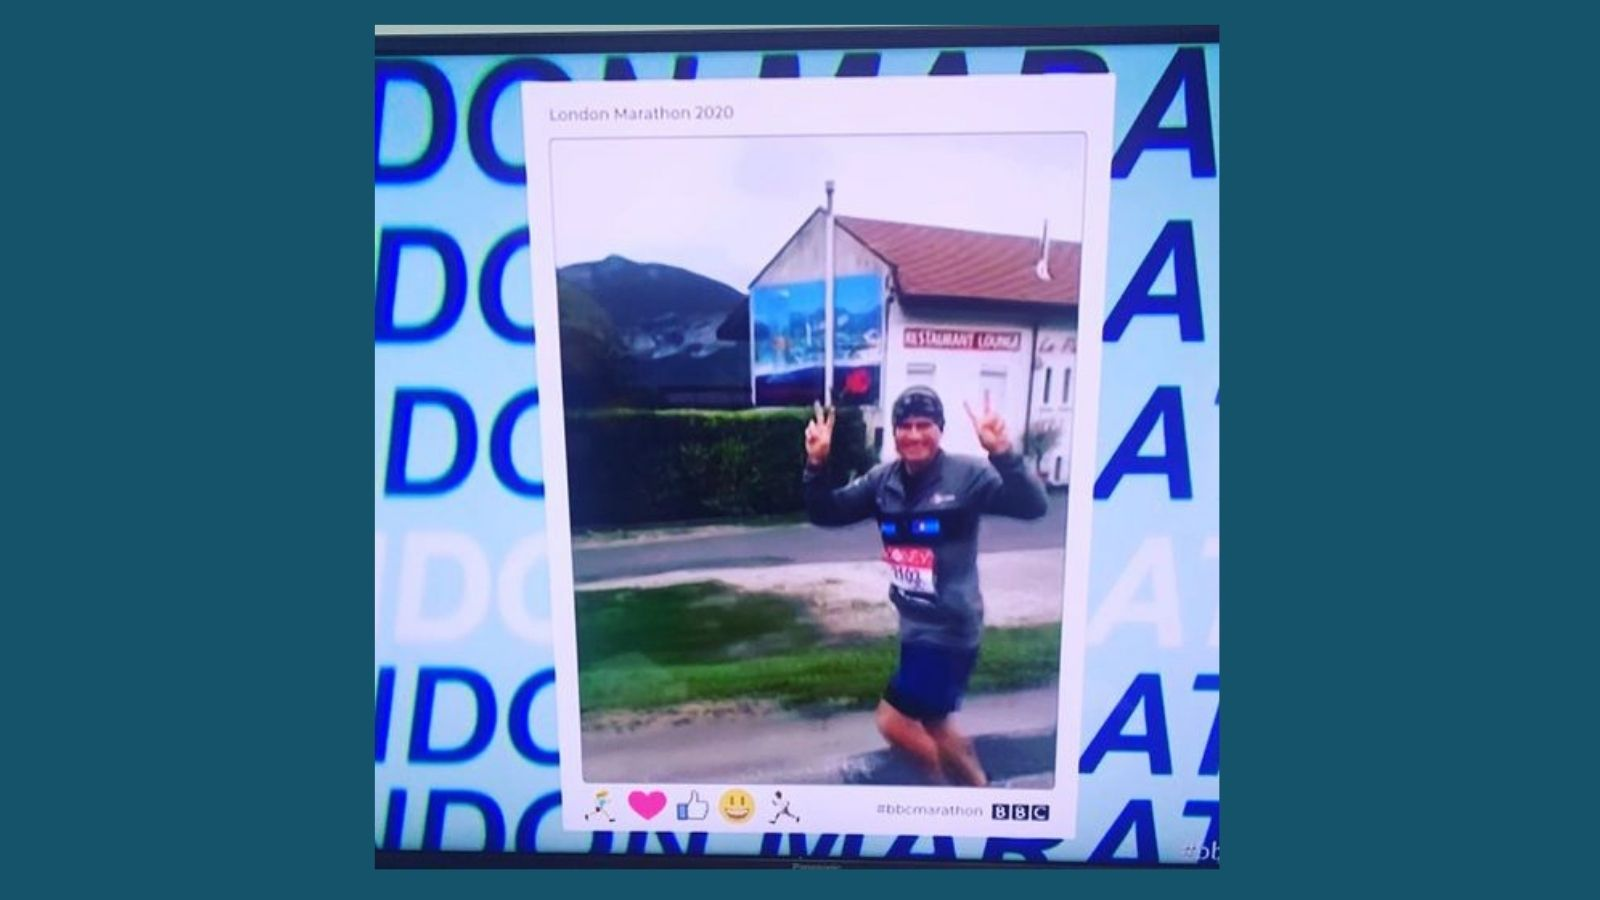 picture of Mark as seen on BBC coverage, jogging make a peace sign and smiling